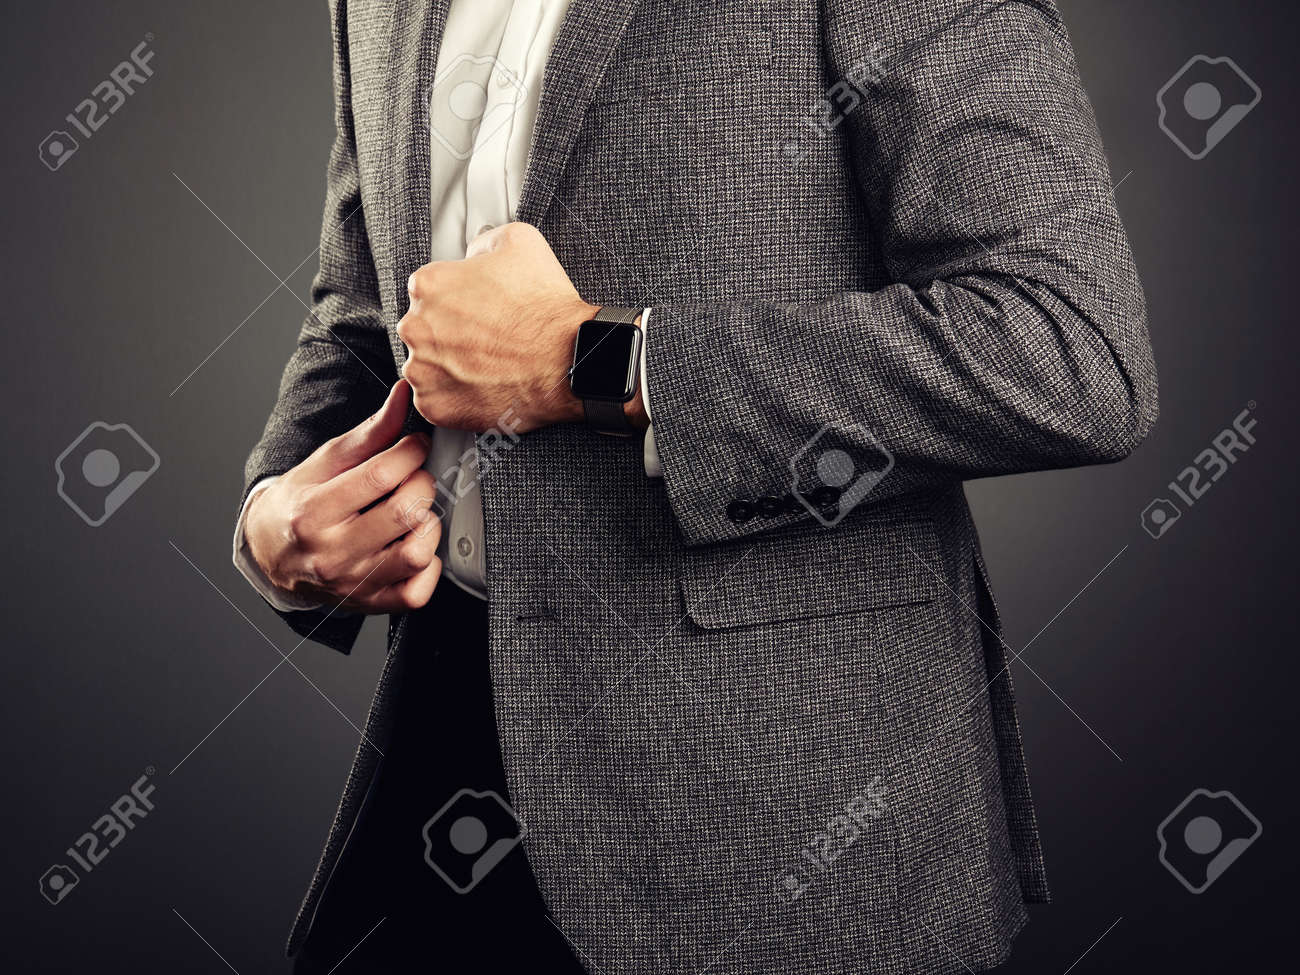 89068deea72 Handsome Young Man in Business Suit. Casual Style and Electronic Gadgets.  Smart Watch